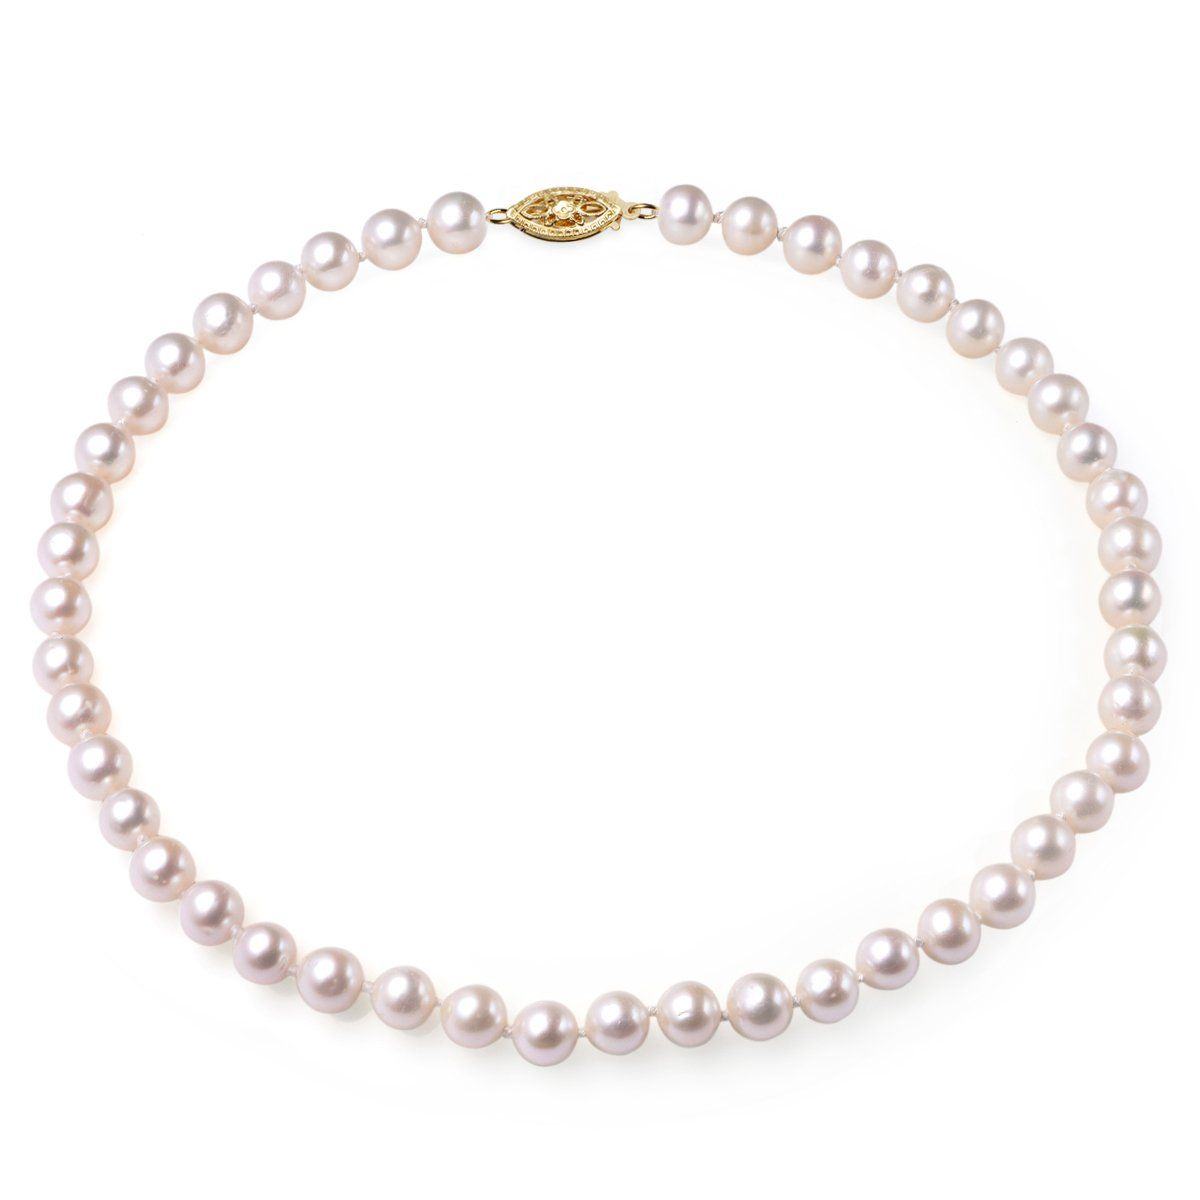 white, 7-8mm, aa, cultured freshwater pearl strand necklace with 14k yellow gold filled fish hook +0